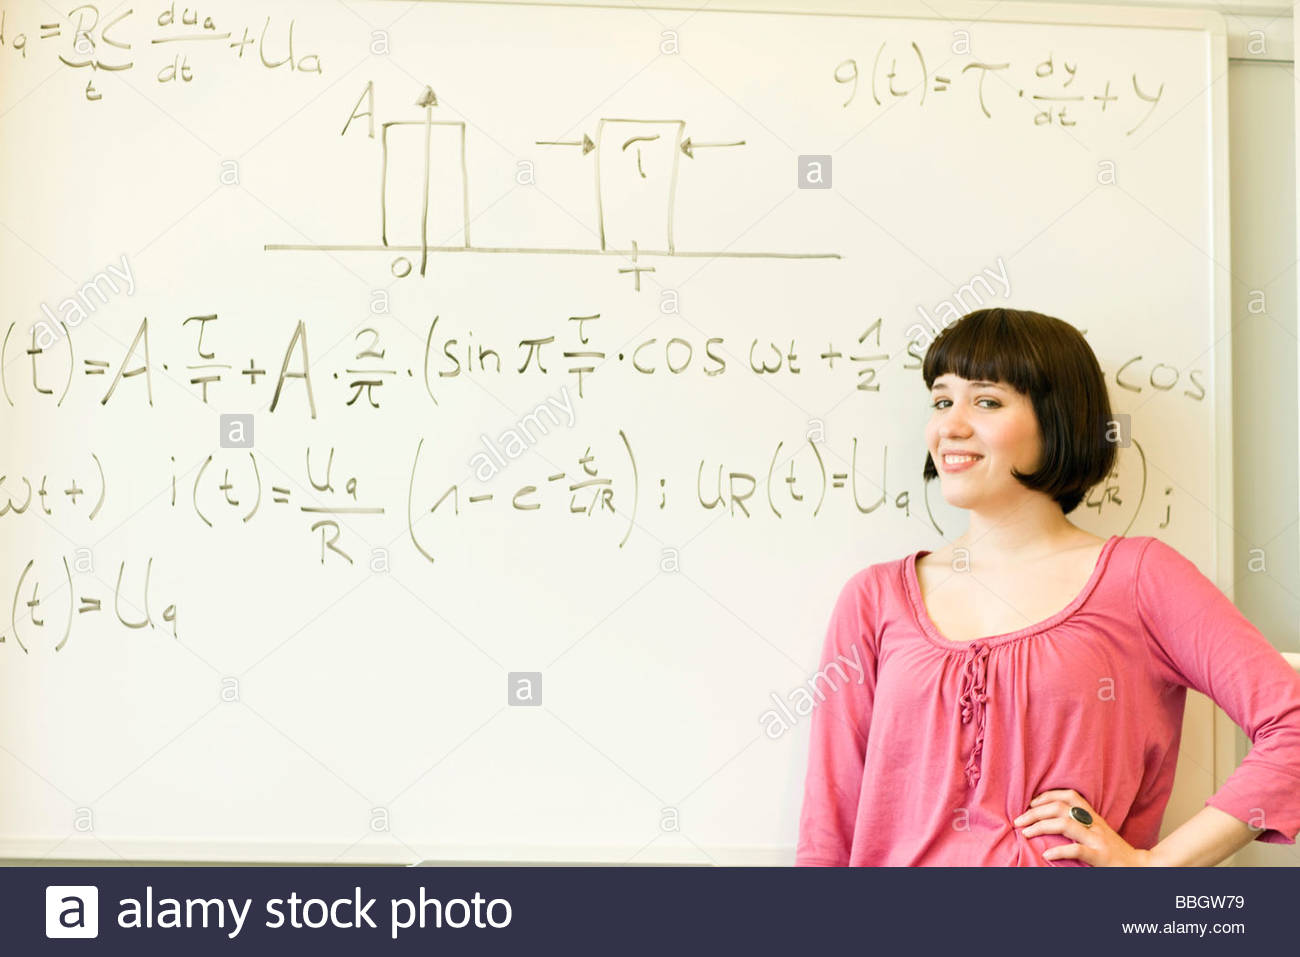 Smiling young woman posing before equation written on board Stock Photo